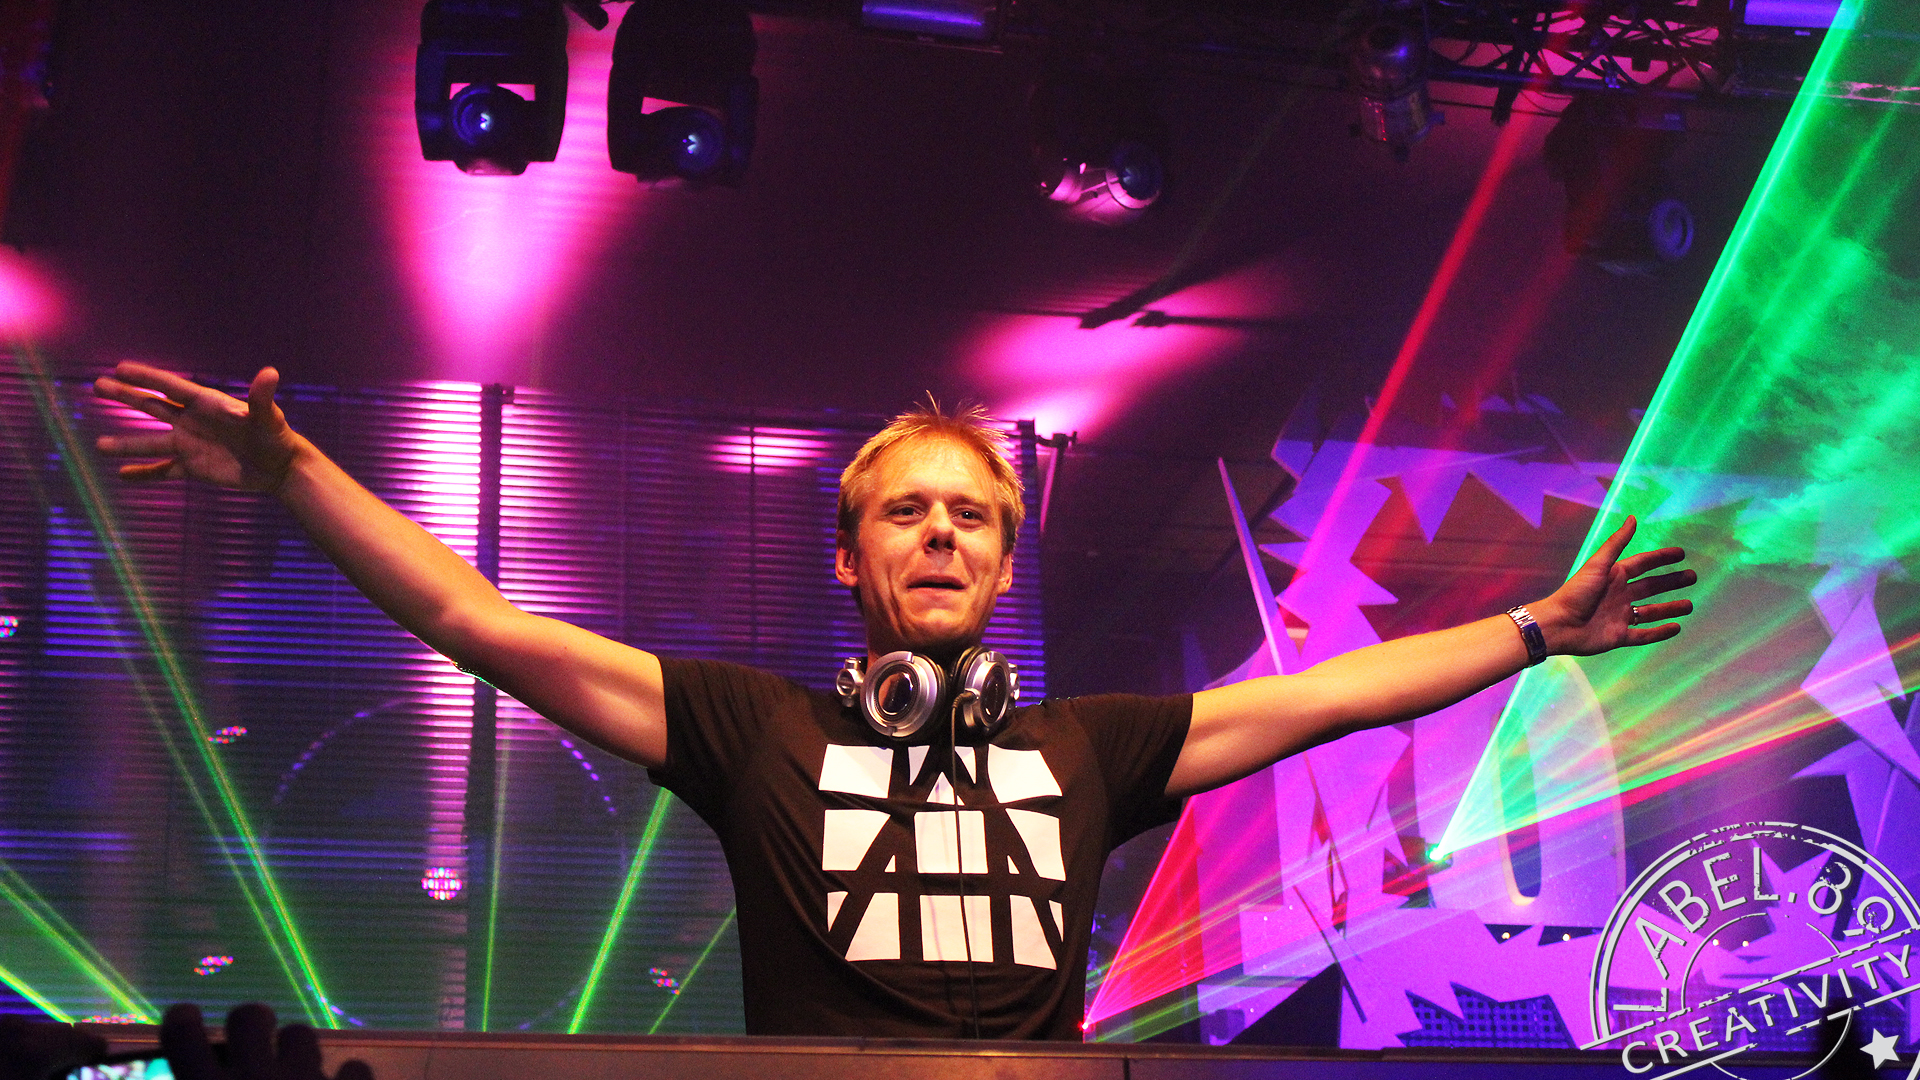 Armin van Buuren does the official remix for Game of ThronesGeeks & Cleats